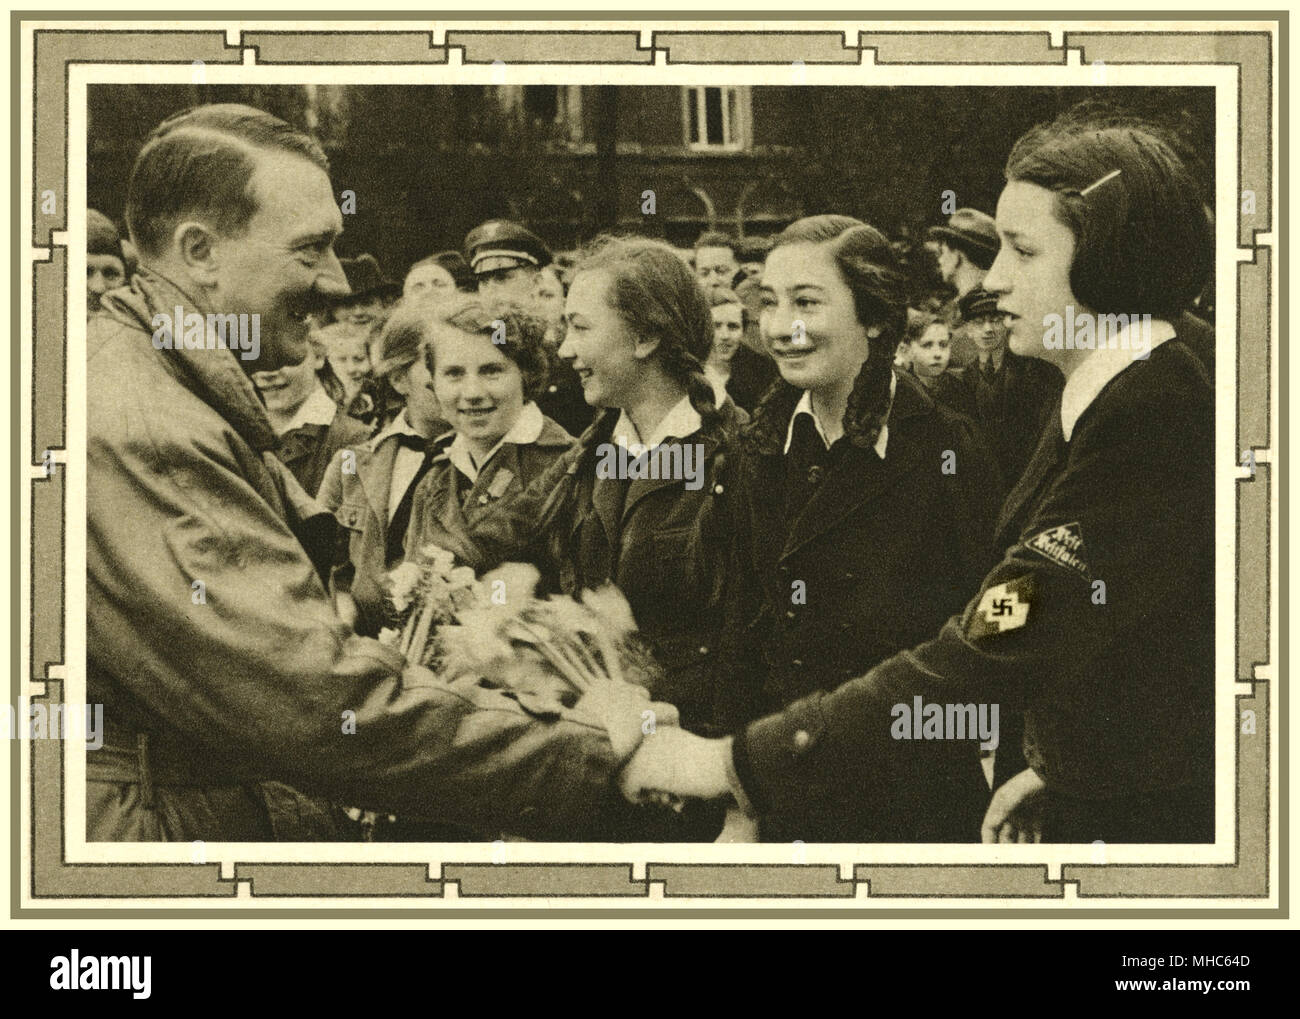 WWII 1939 Germany, Adolf Hitler Führer meeting impressionable teenage girls, the group leader in foreground, wearing a Swastika and rank badge, inducted into the 'Band of German Maidens ' (Bund Deutscher Mädel / BDM) wing of the Nazi Party Hitler Youth organization - Stock Image